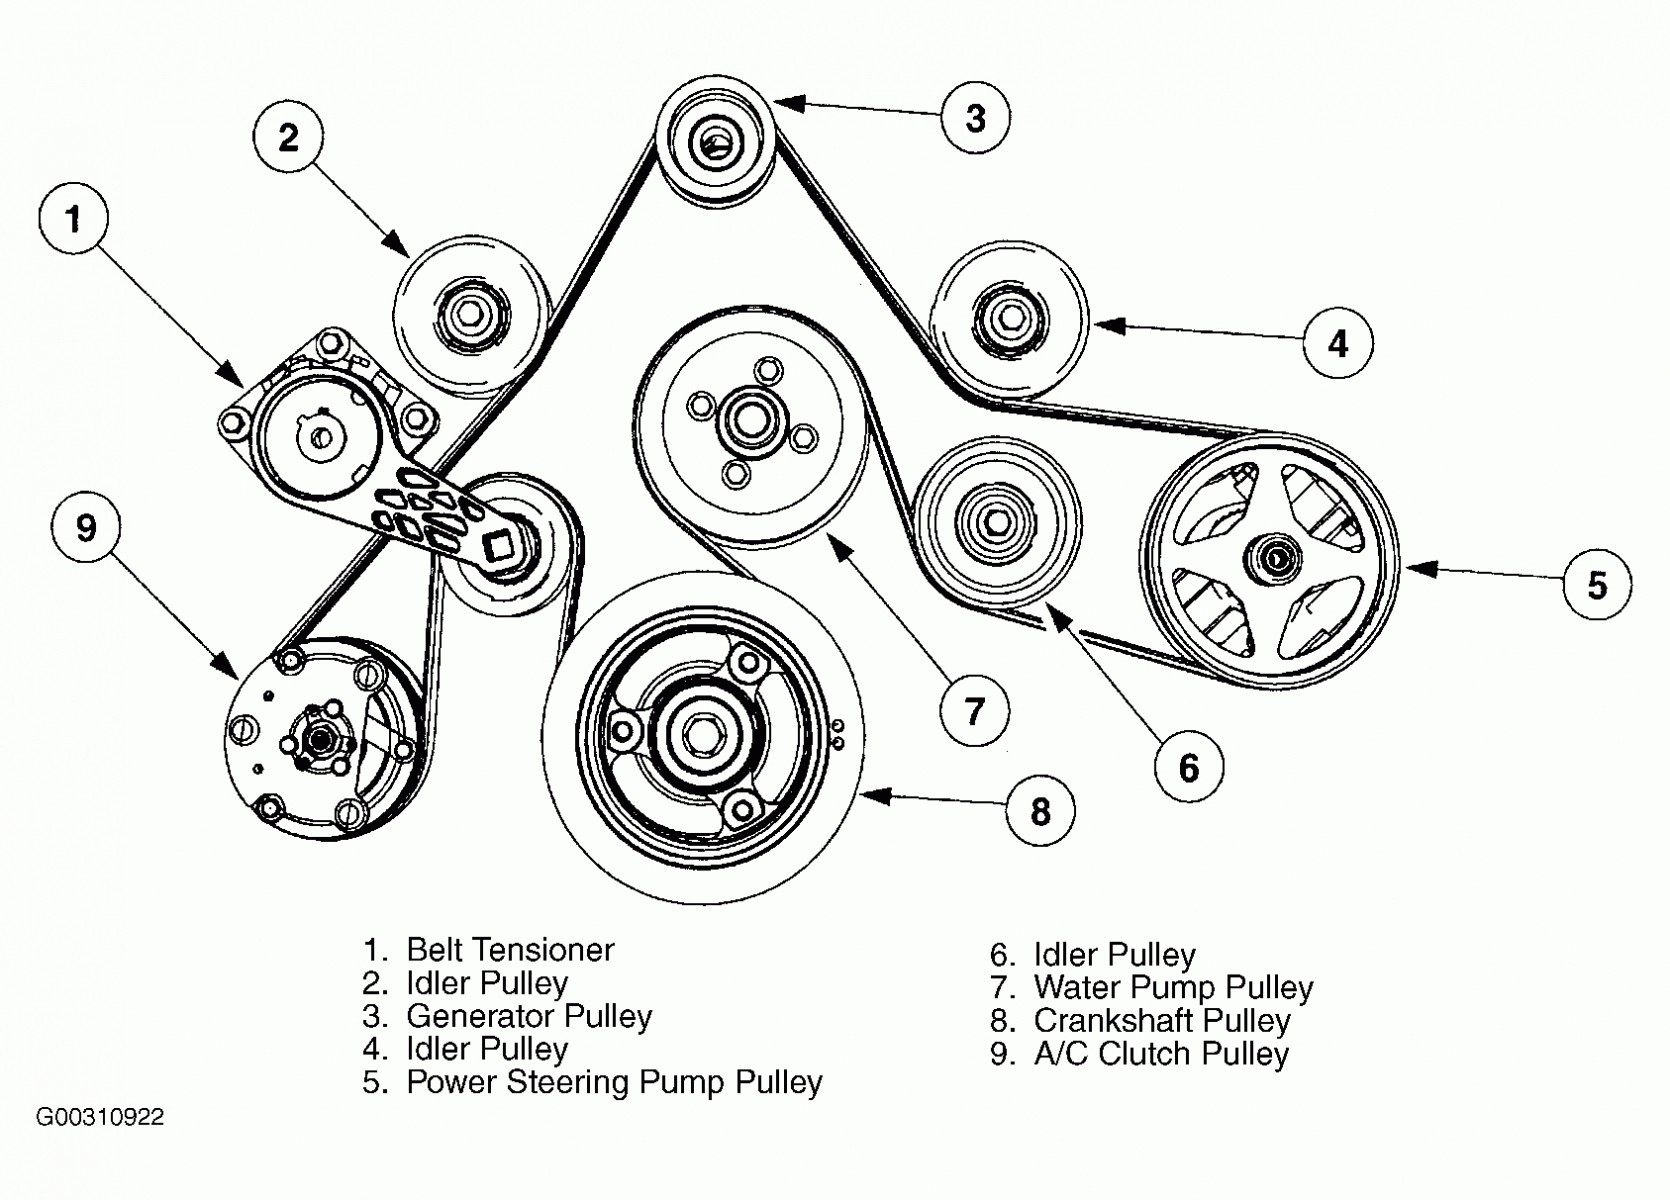 hight resolution of 2007 ford f 150 wiring diagram generator wiring library 2003 ford taurus belt diagram 2007 ford